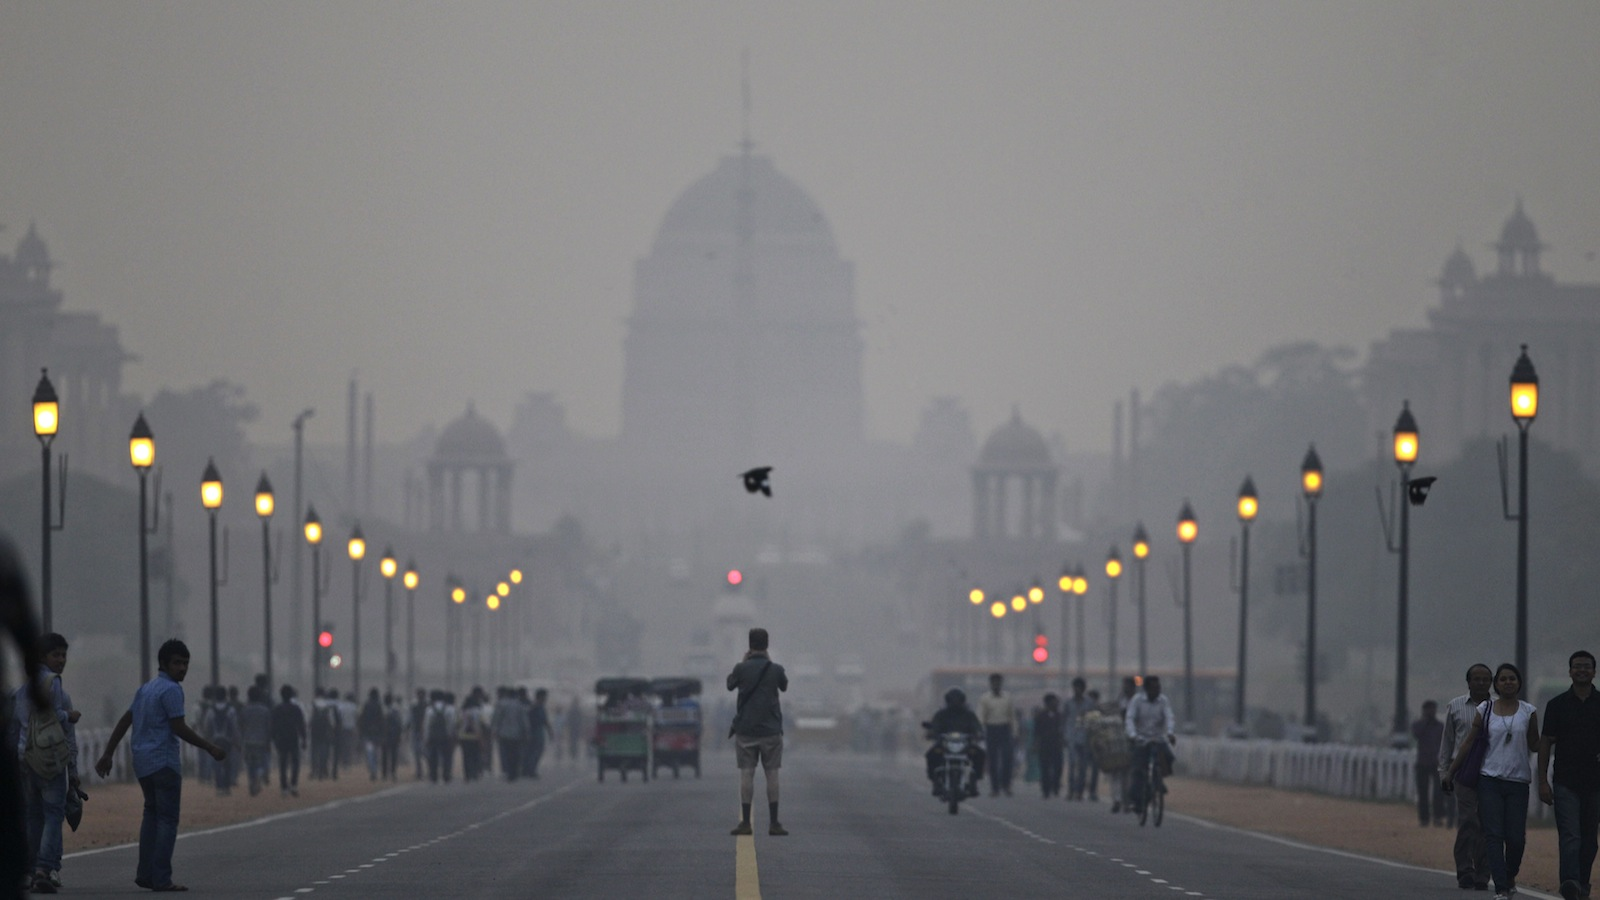 A tourist stands in the middle of a street in front of the Presidential Palace enveloped by a blanket of smog, caused by a mixture of pollution and fog, in New Delhi, India, Saturday, Nov. 3, 2012. Environmentalists say that the level of pollution in the city has reached an alarming level, according to news reports. (AP Photo/Altaf Qadri)